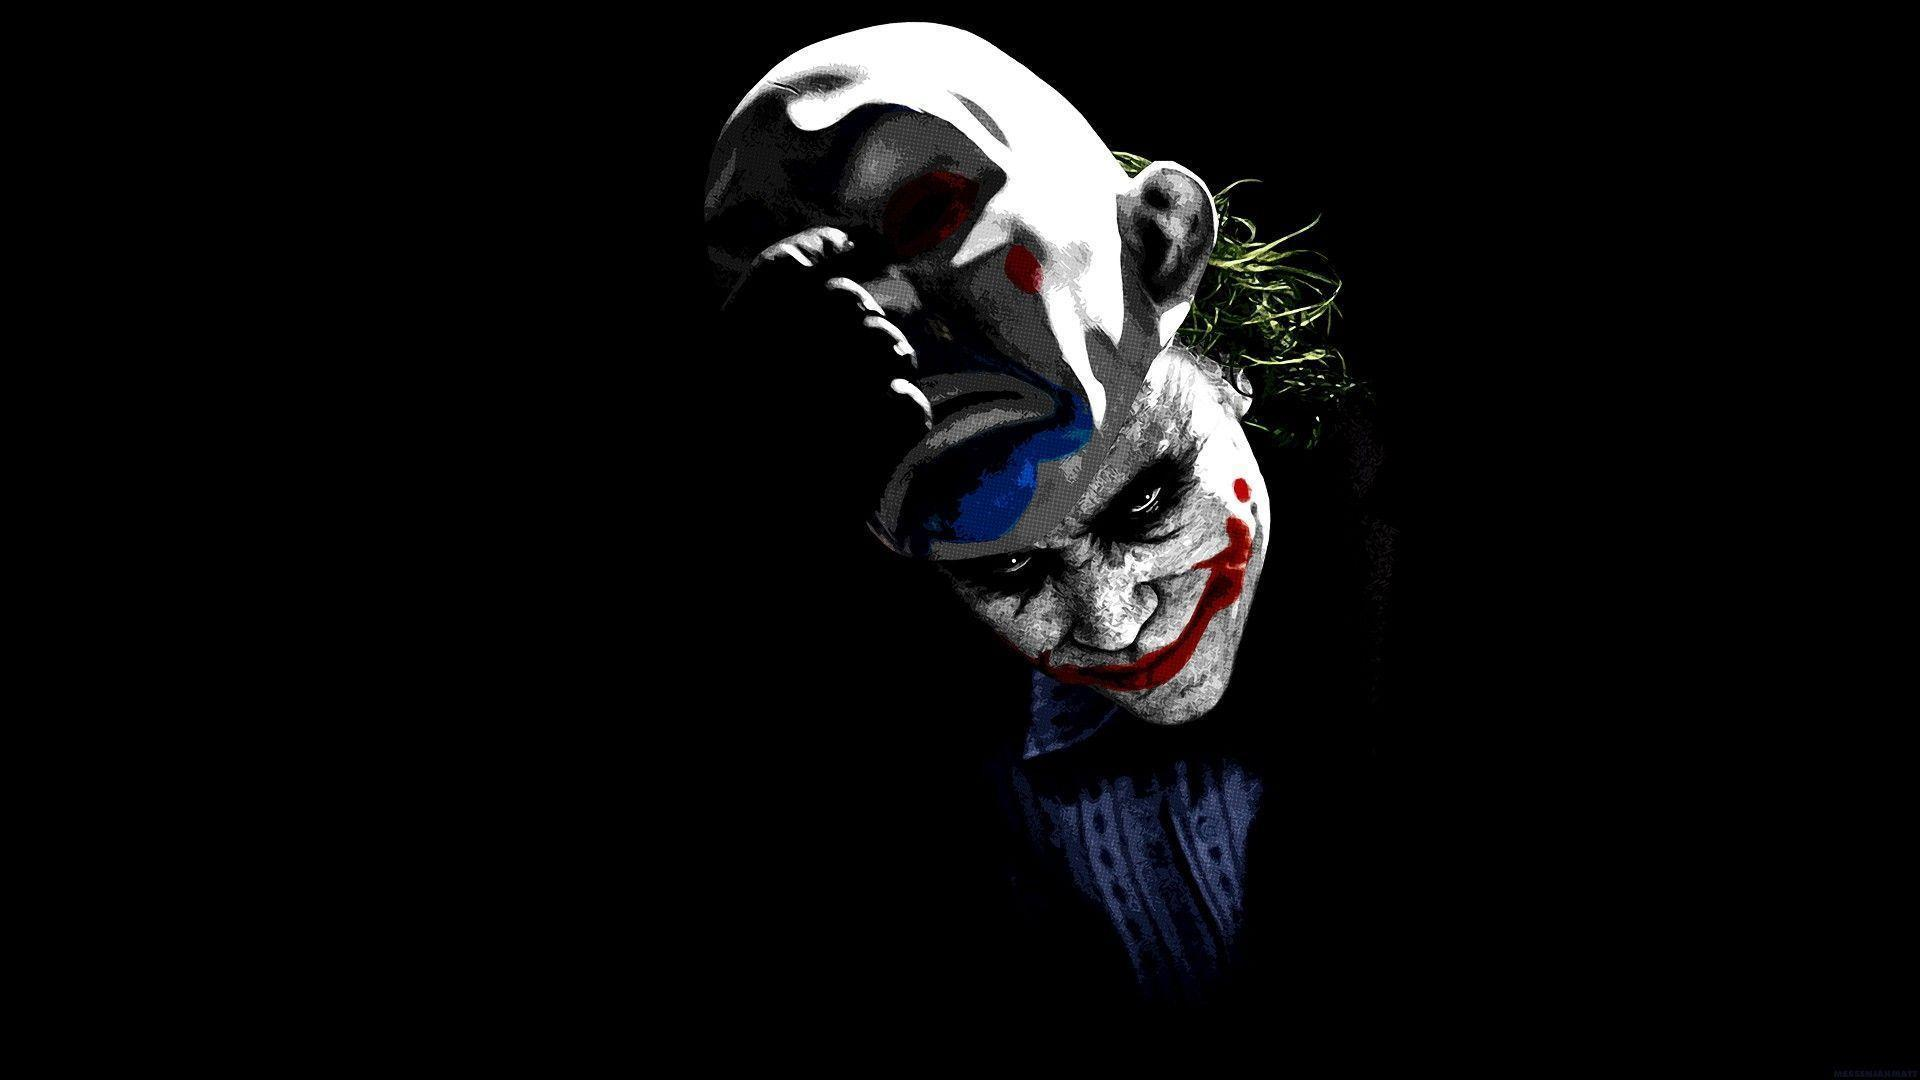 Scary Joker Images HD Wallpaper